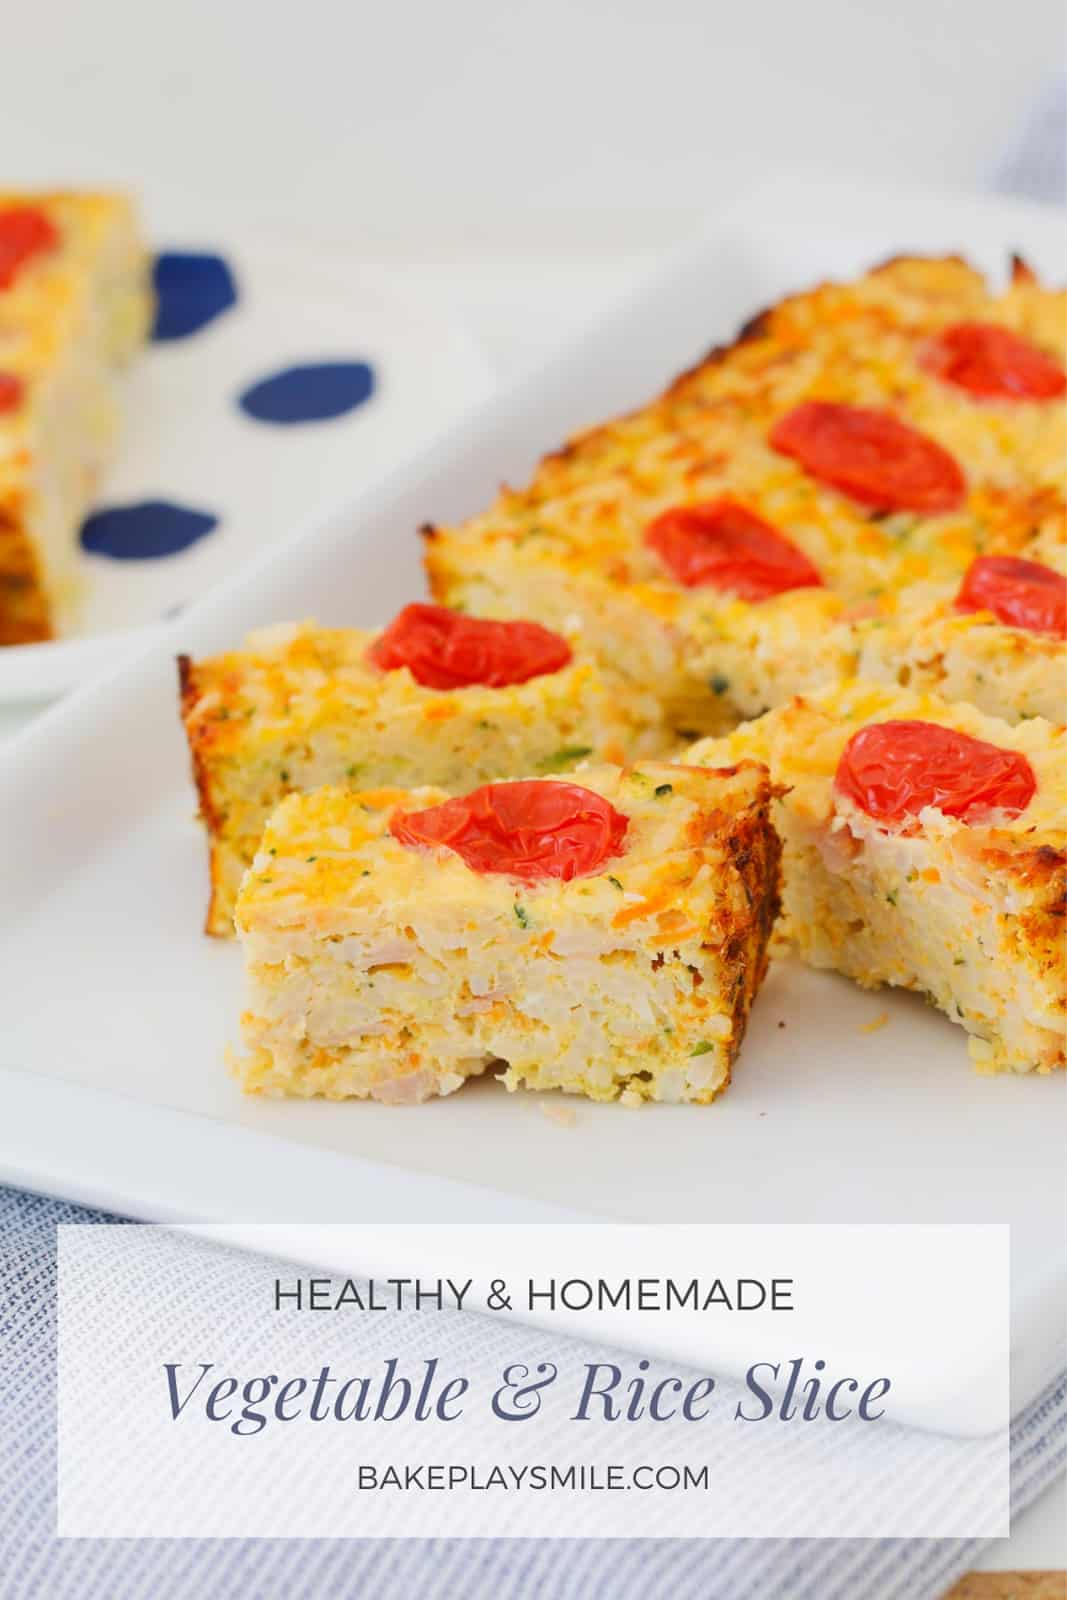 Pieces of a rice & vegetable slice, with cherry tomatoes on top.